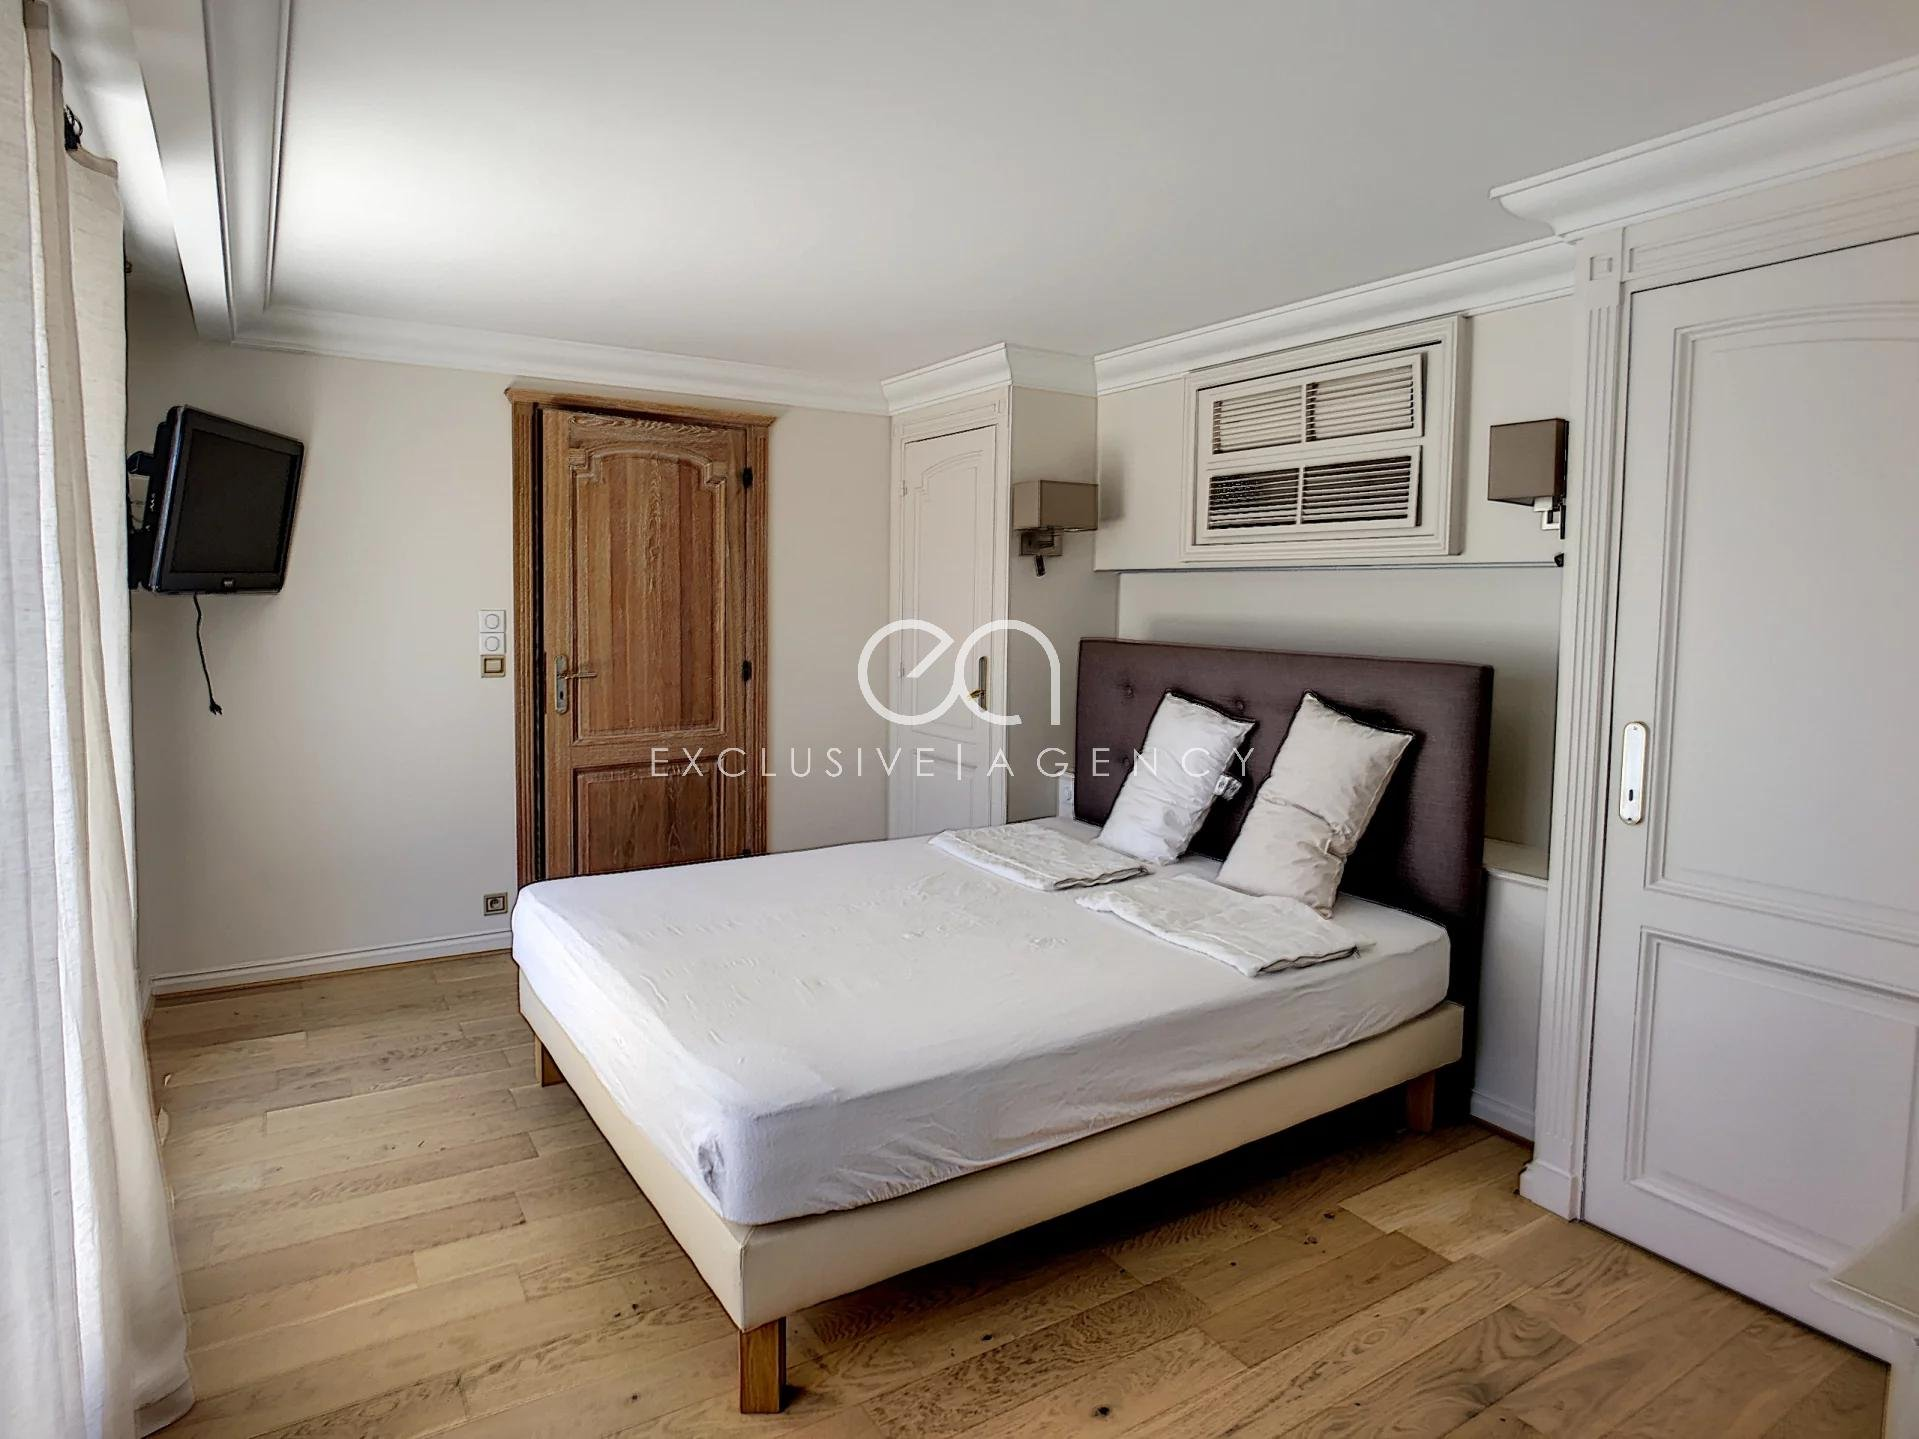 MONTHLY RENTAL CANNES CENTER 6-roomS appartement 250sqm with 60sqm terrace.